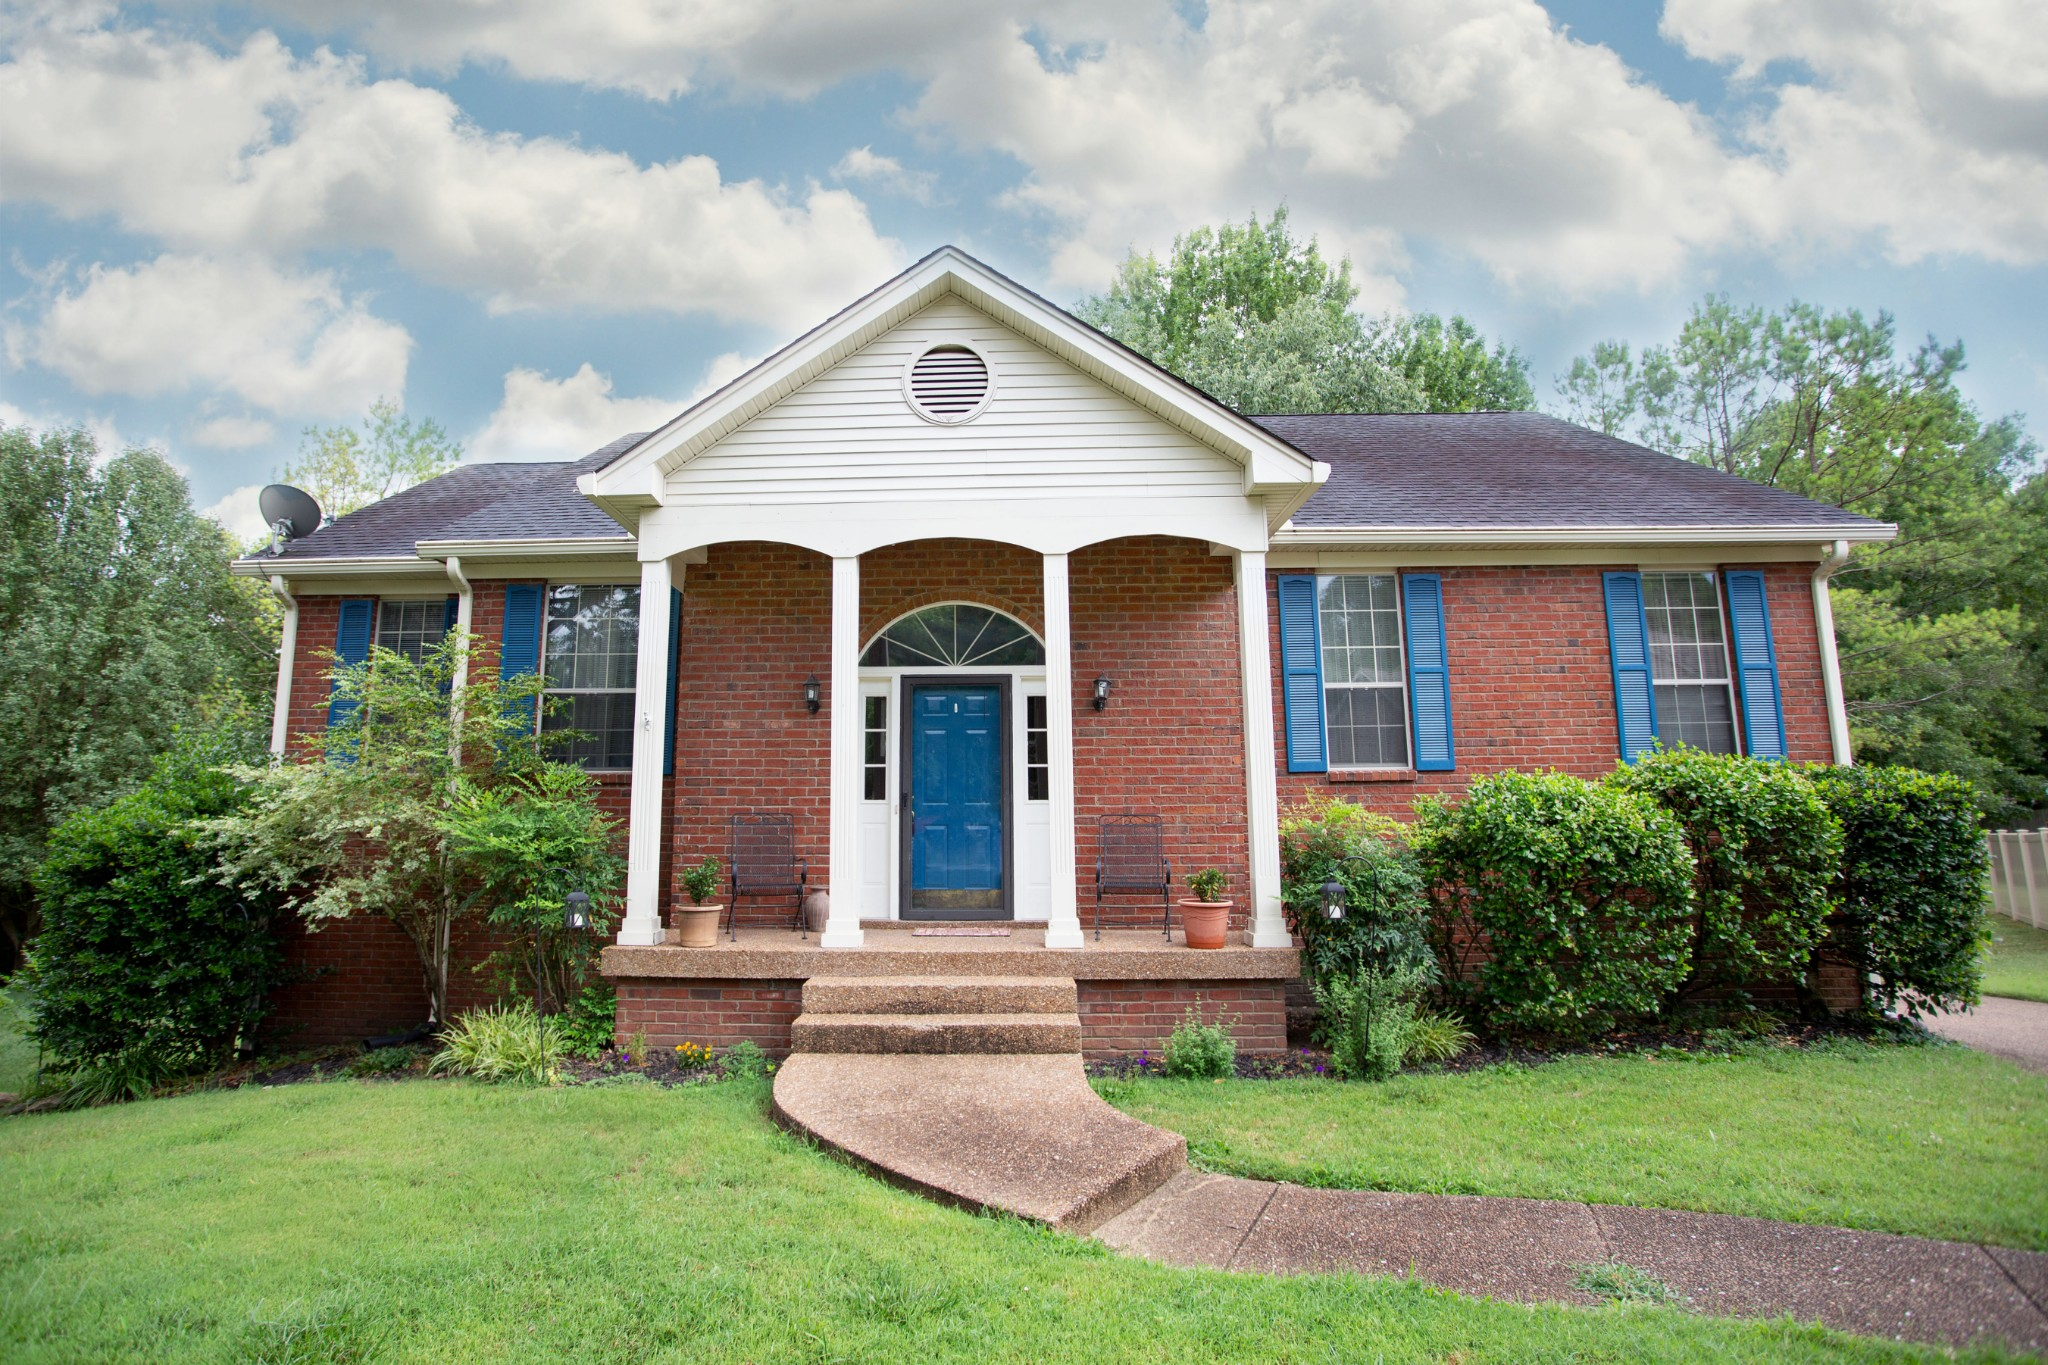 5 Bedroom 3 Bath Home On .43 Acre Treed Lot With Large Deck And Patio!  120 Buckingham Ct., Goodlettsville, TN.  37072